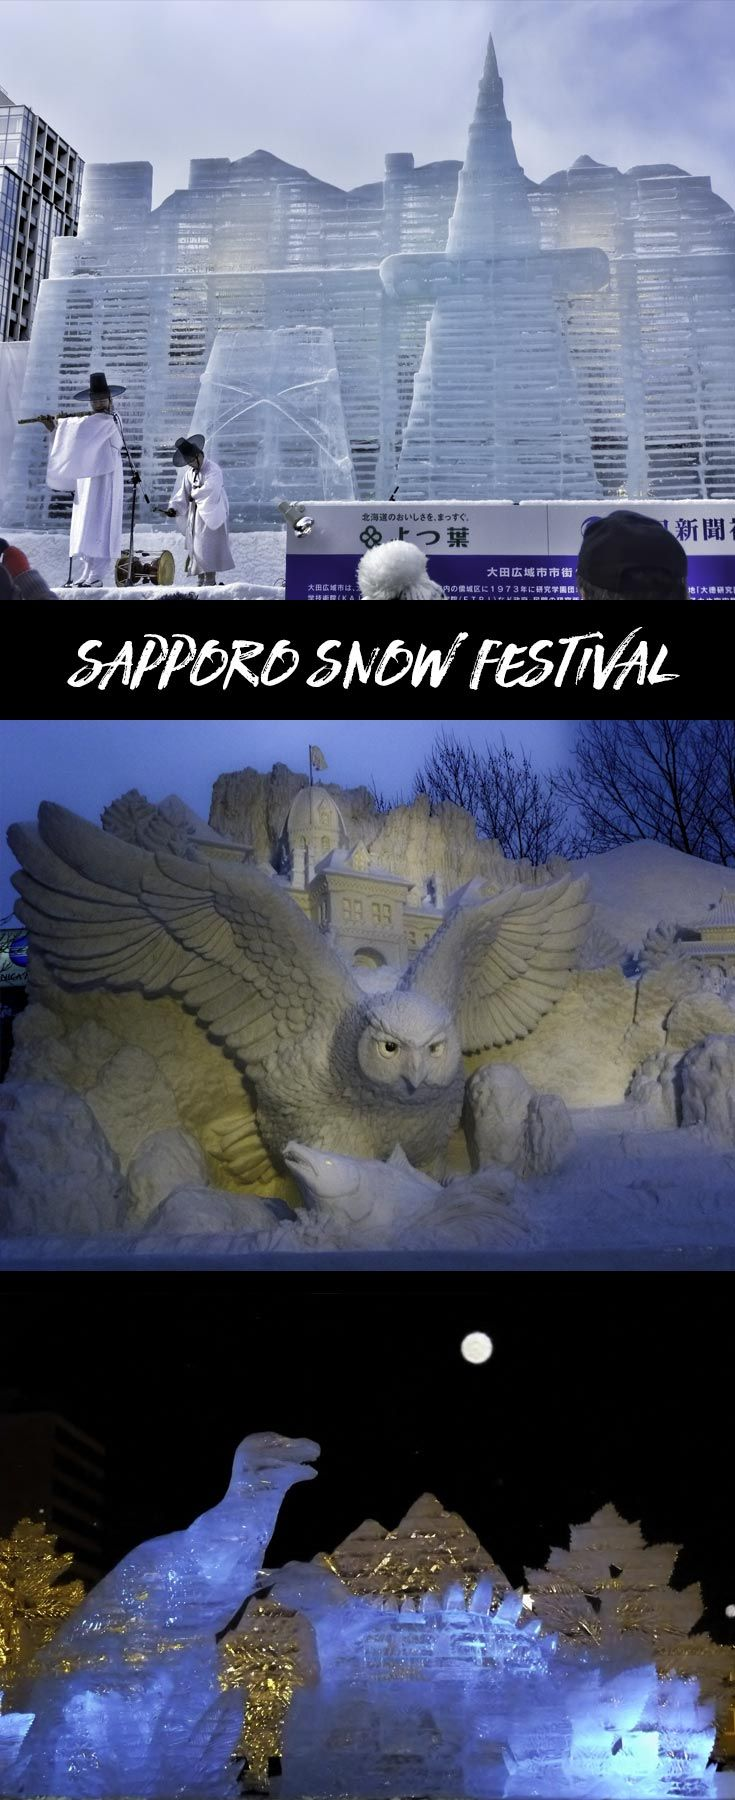 Sapporo Snow Festival In Japan - Everything you need to plan your viist